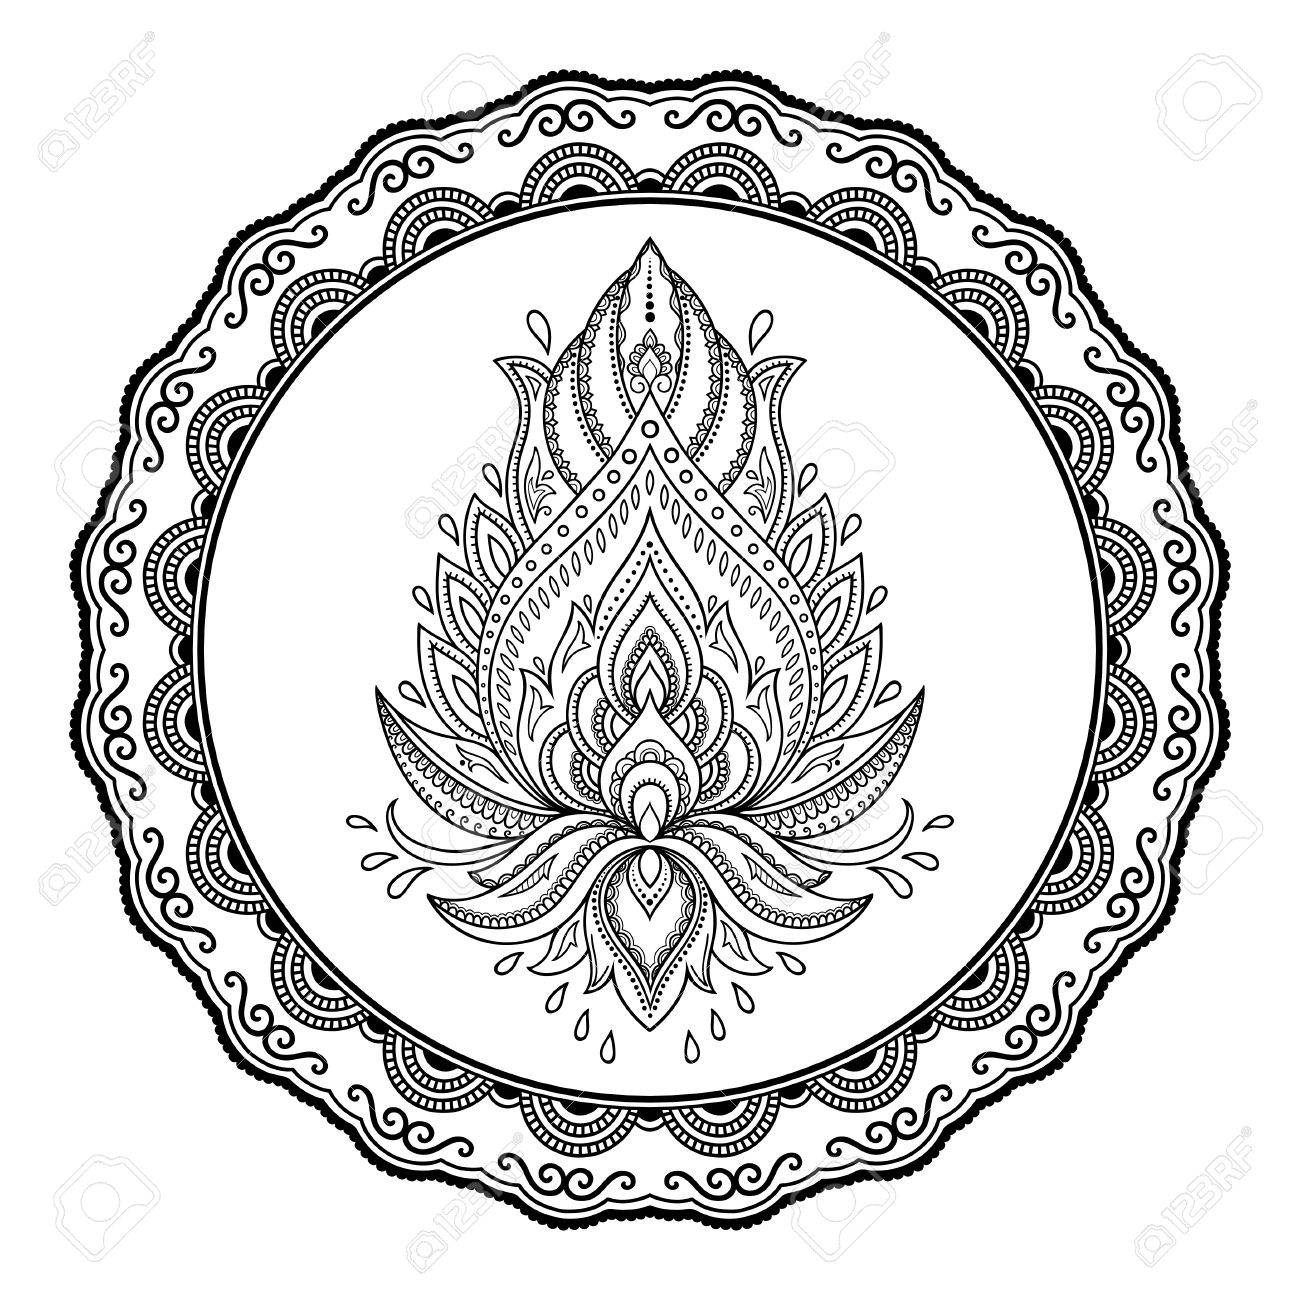 a circular pattern in the form of a mandala henna tattoo flower rh 123rf com Scalable Vector Graphics Scalable Vector Graphics